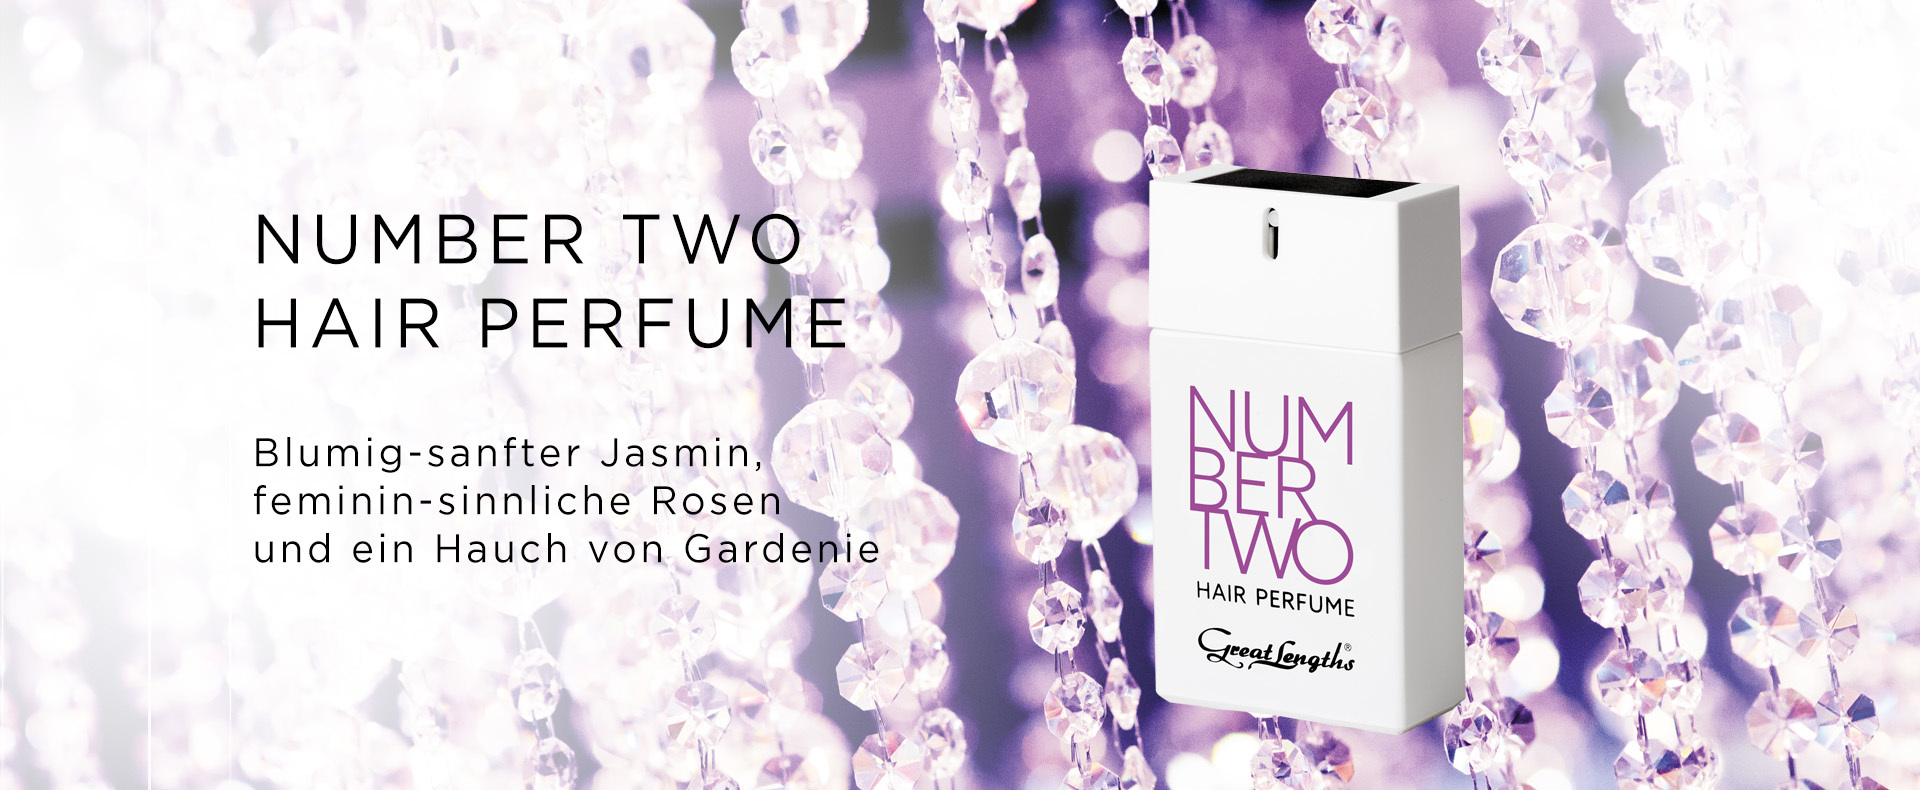 NUMBER TWO - Hair Perfume (© Great Lengths)